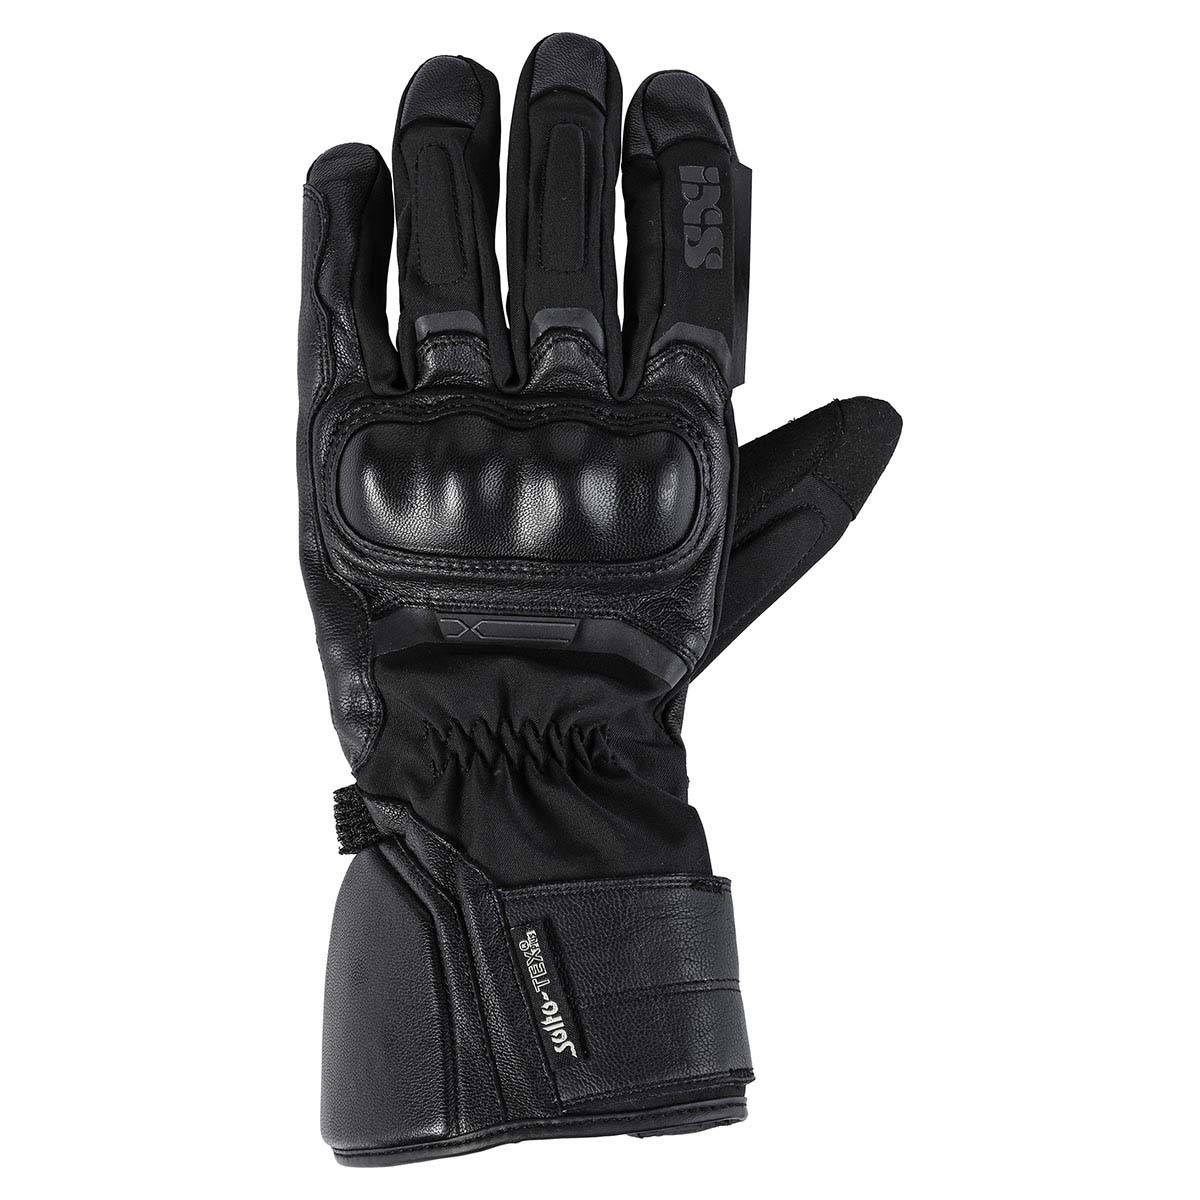 ST-PLUS GLOVE